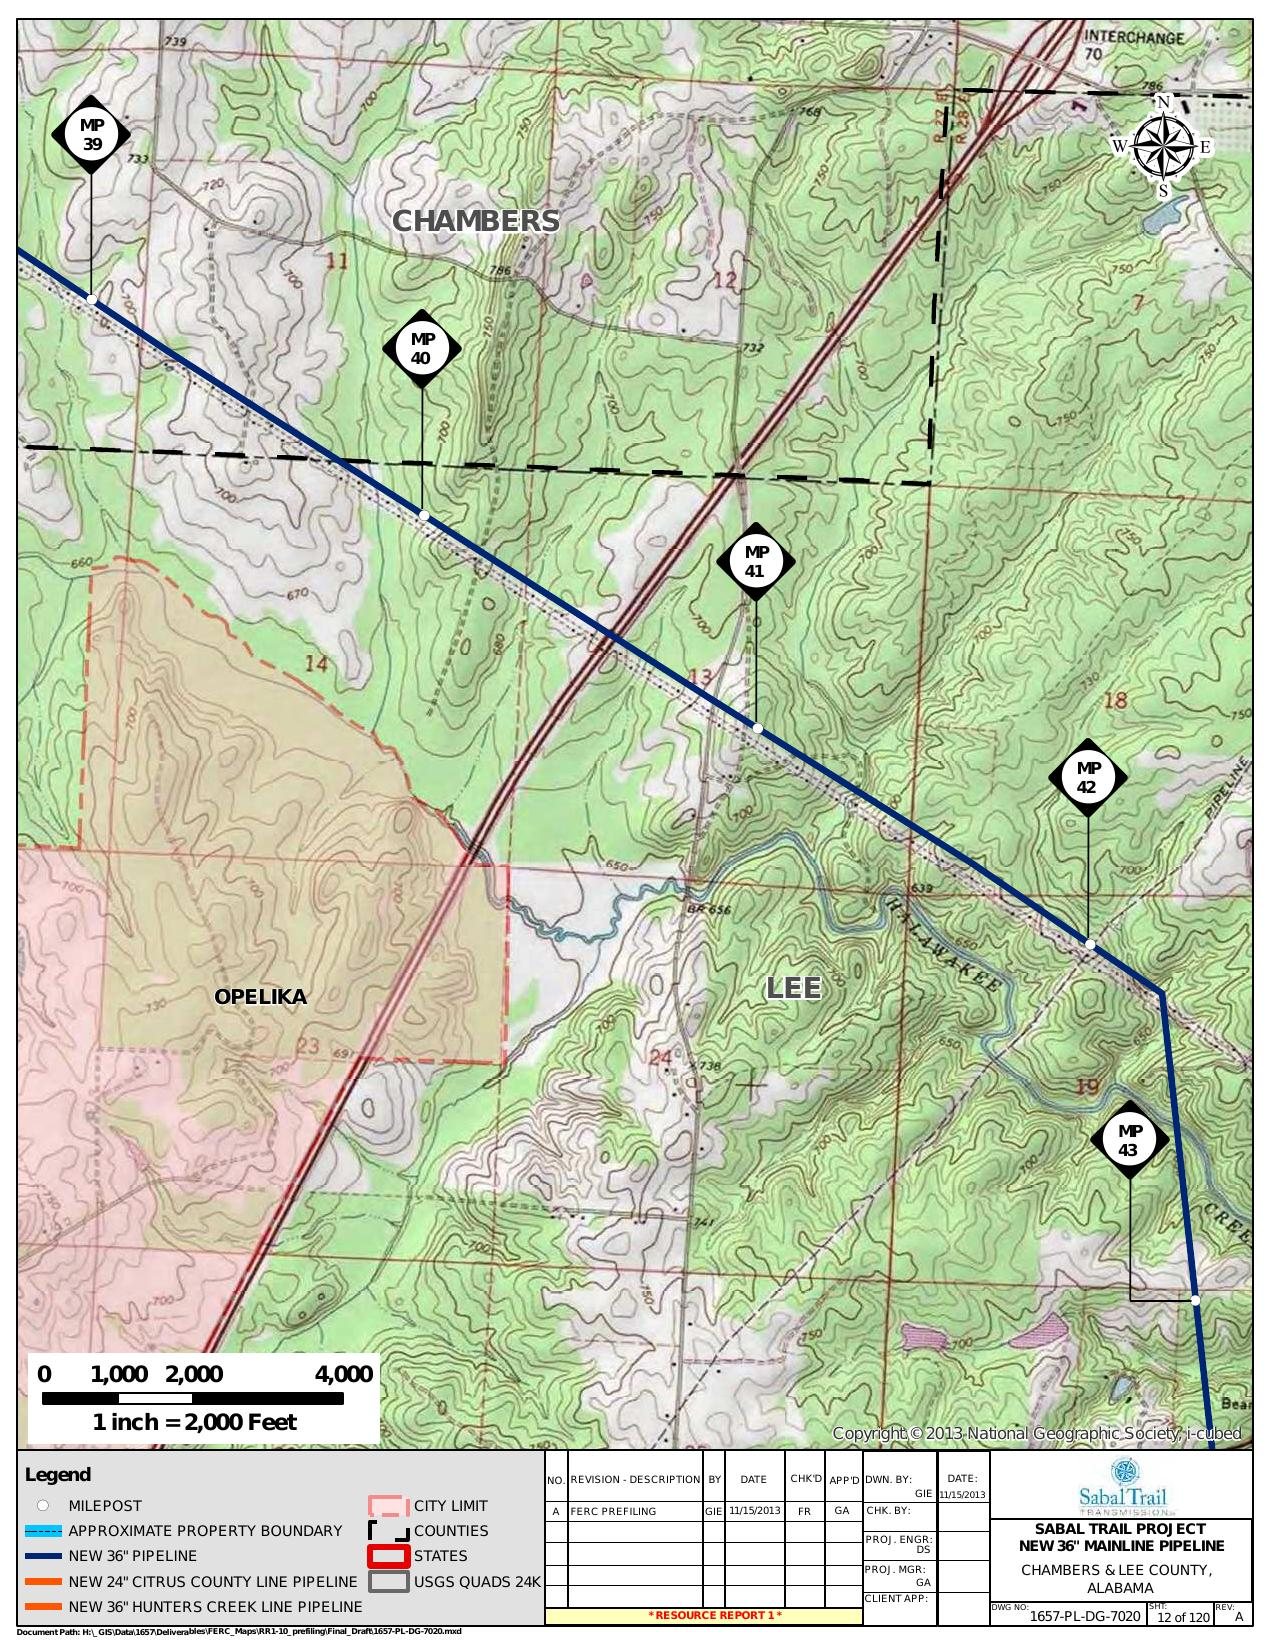 Opelika, Chambers and Lee County, Alabama, in General Project Description, by SpectraBusters, for FERC Docket No. PF14-1-000, 15 November 2013, converted by SpectraBusters